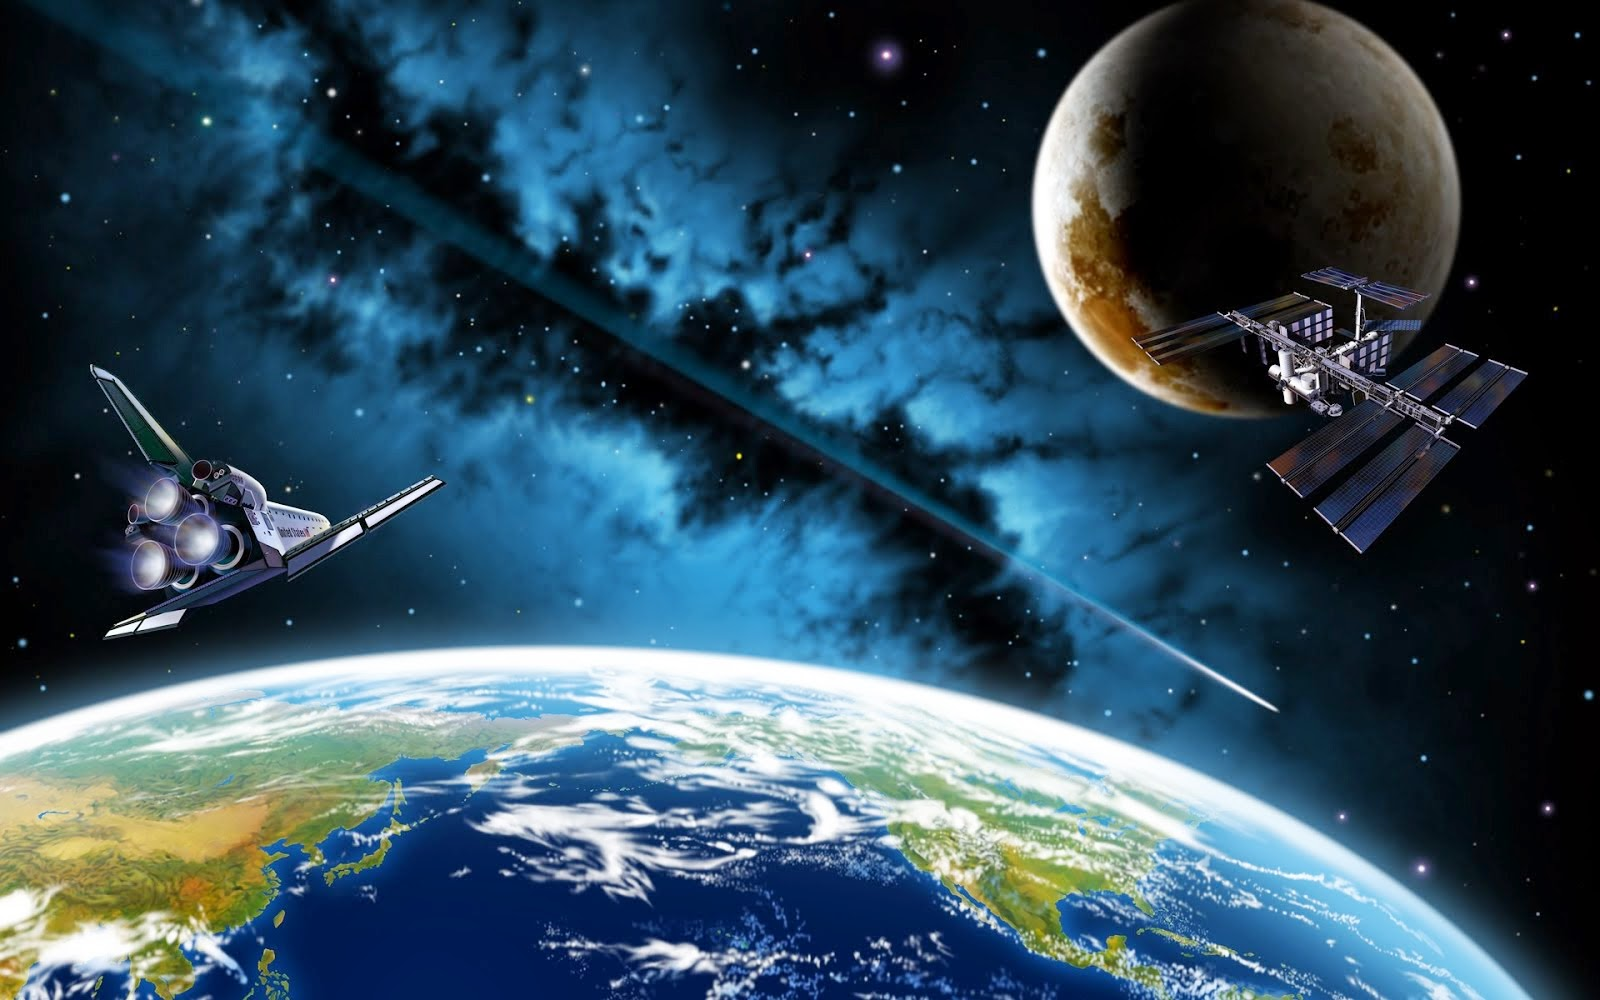 Space Wallpapers High Resolution: High Resolution Space Wallpapers